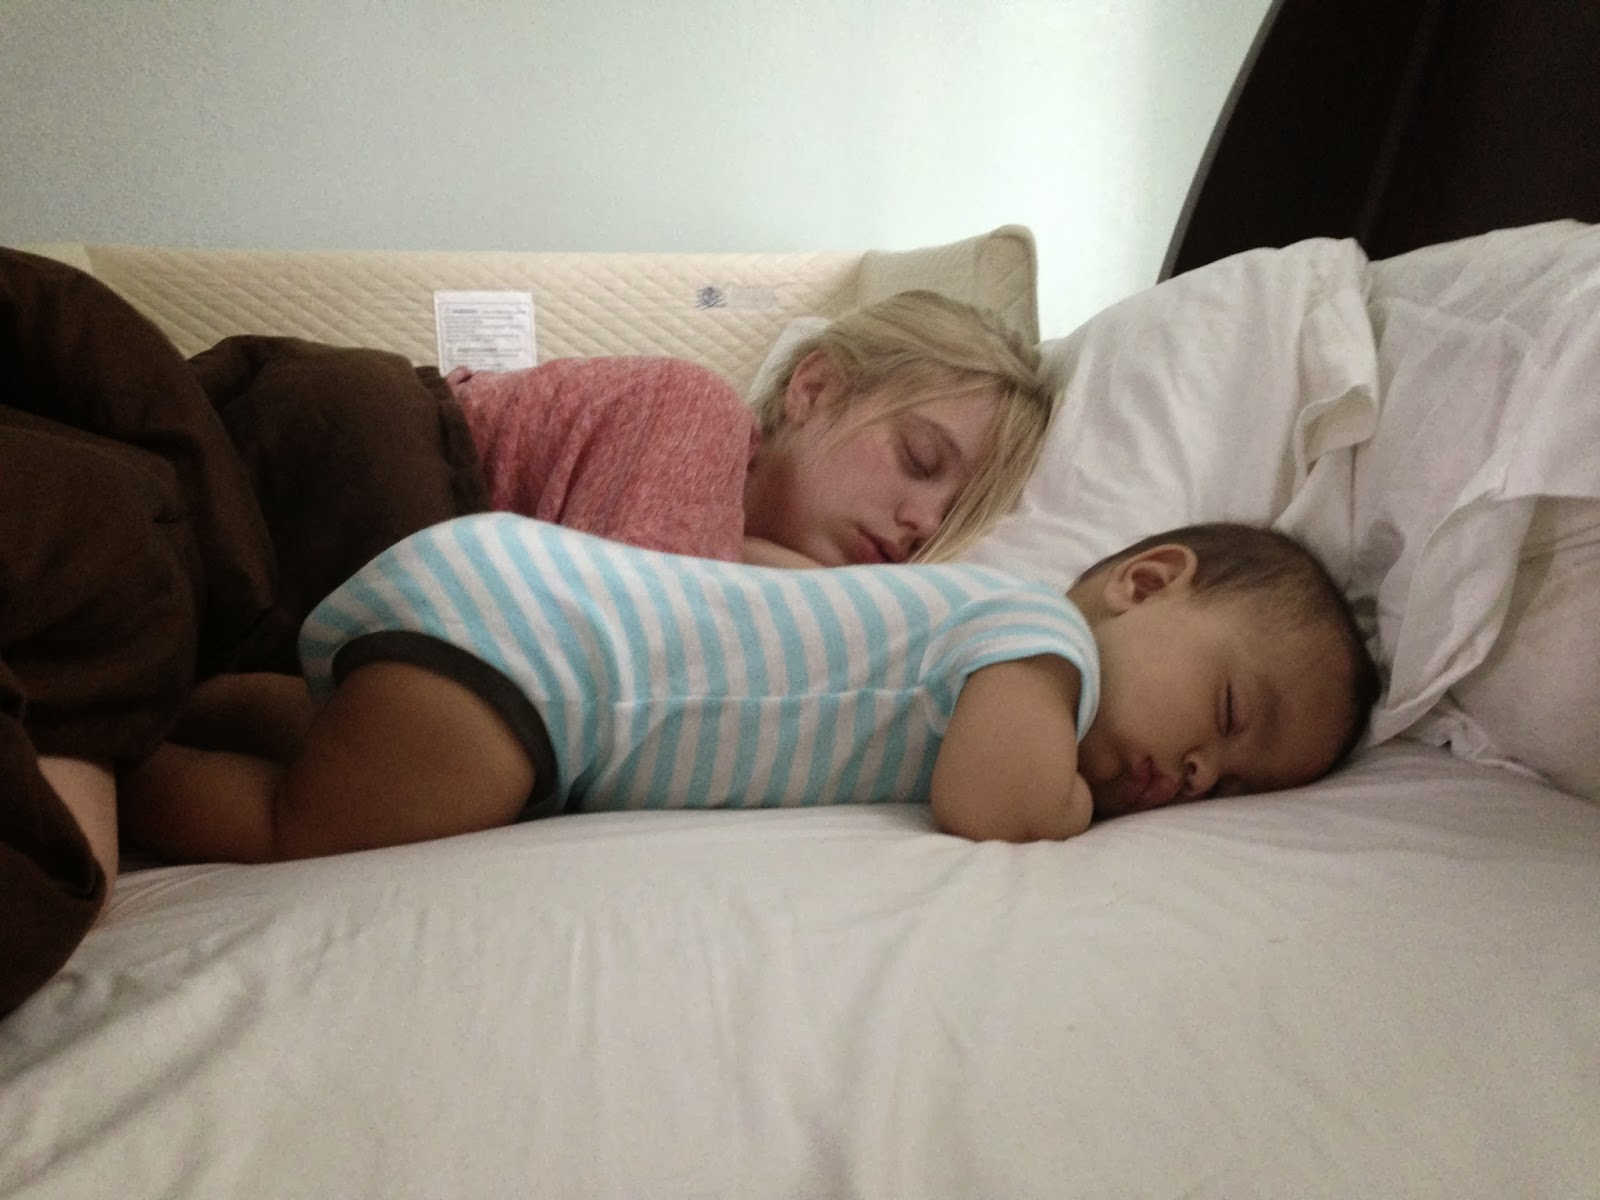 My Sleeping Wife and Baby: Tummy Time